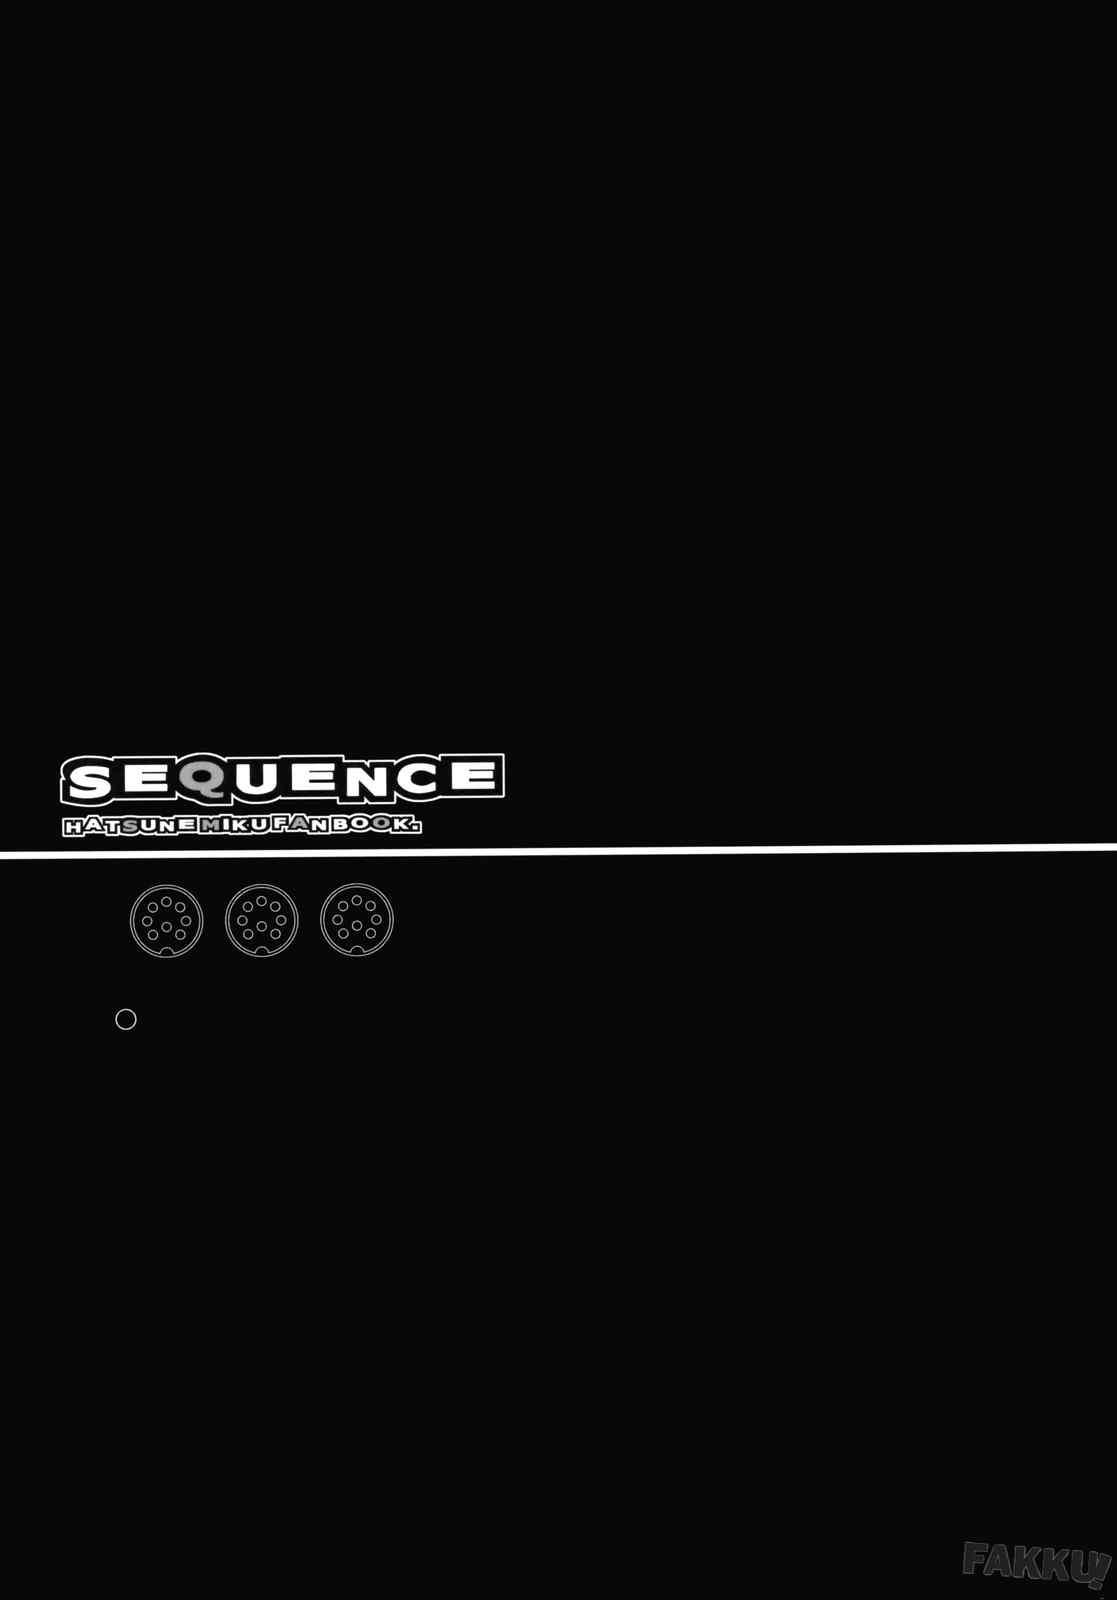 Sequence 26